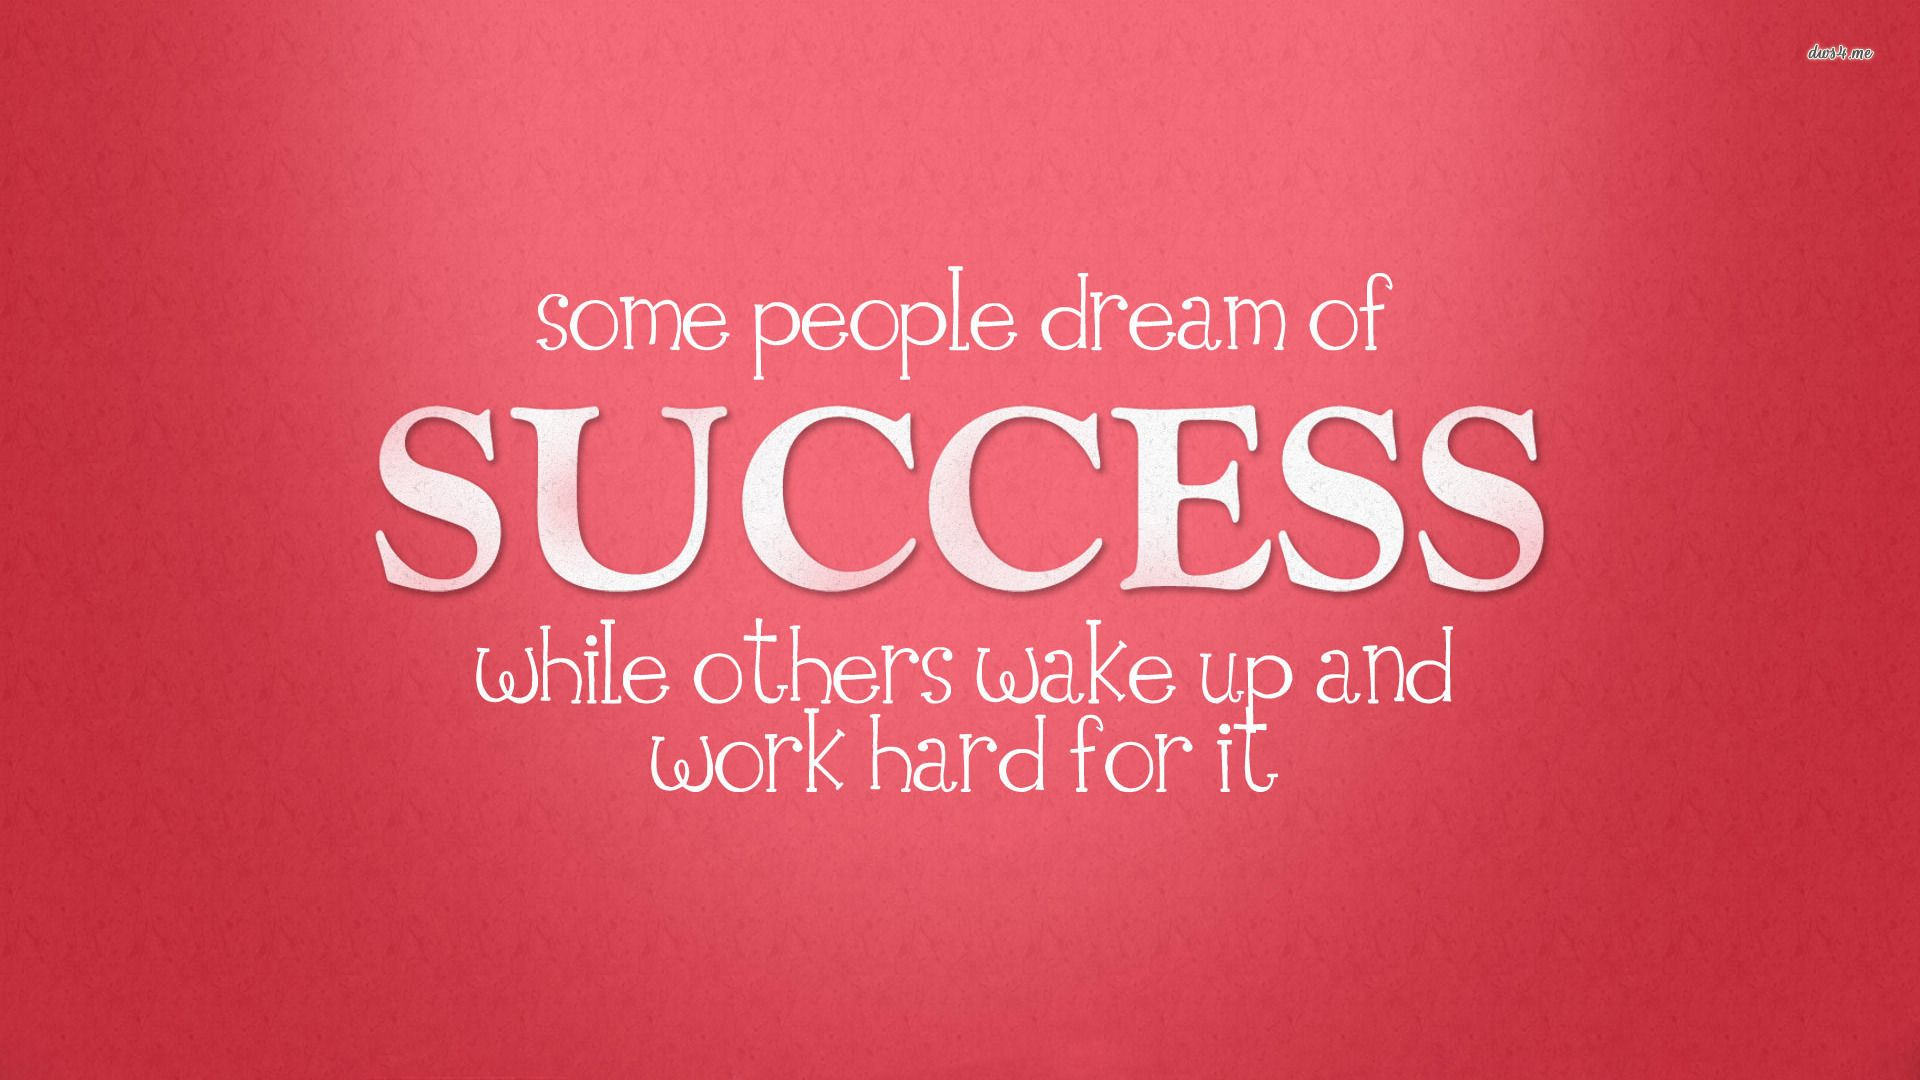 Success wallpaper Quote wallpapers 29475 Systems for